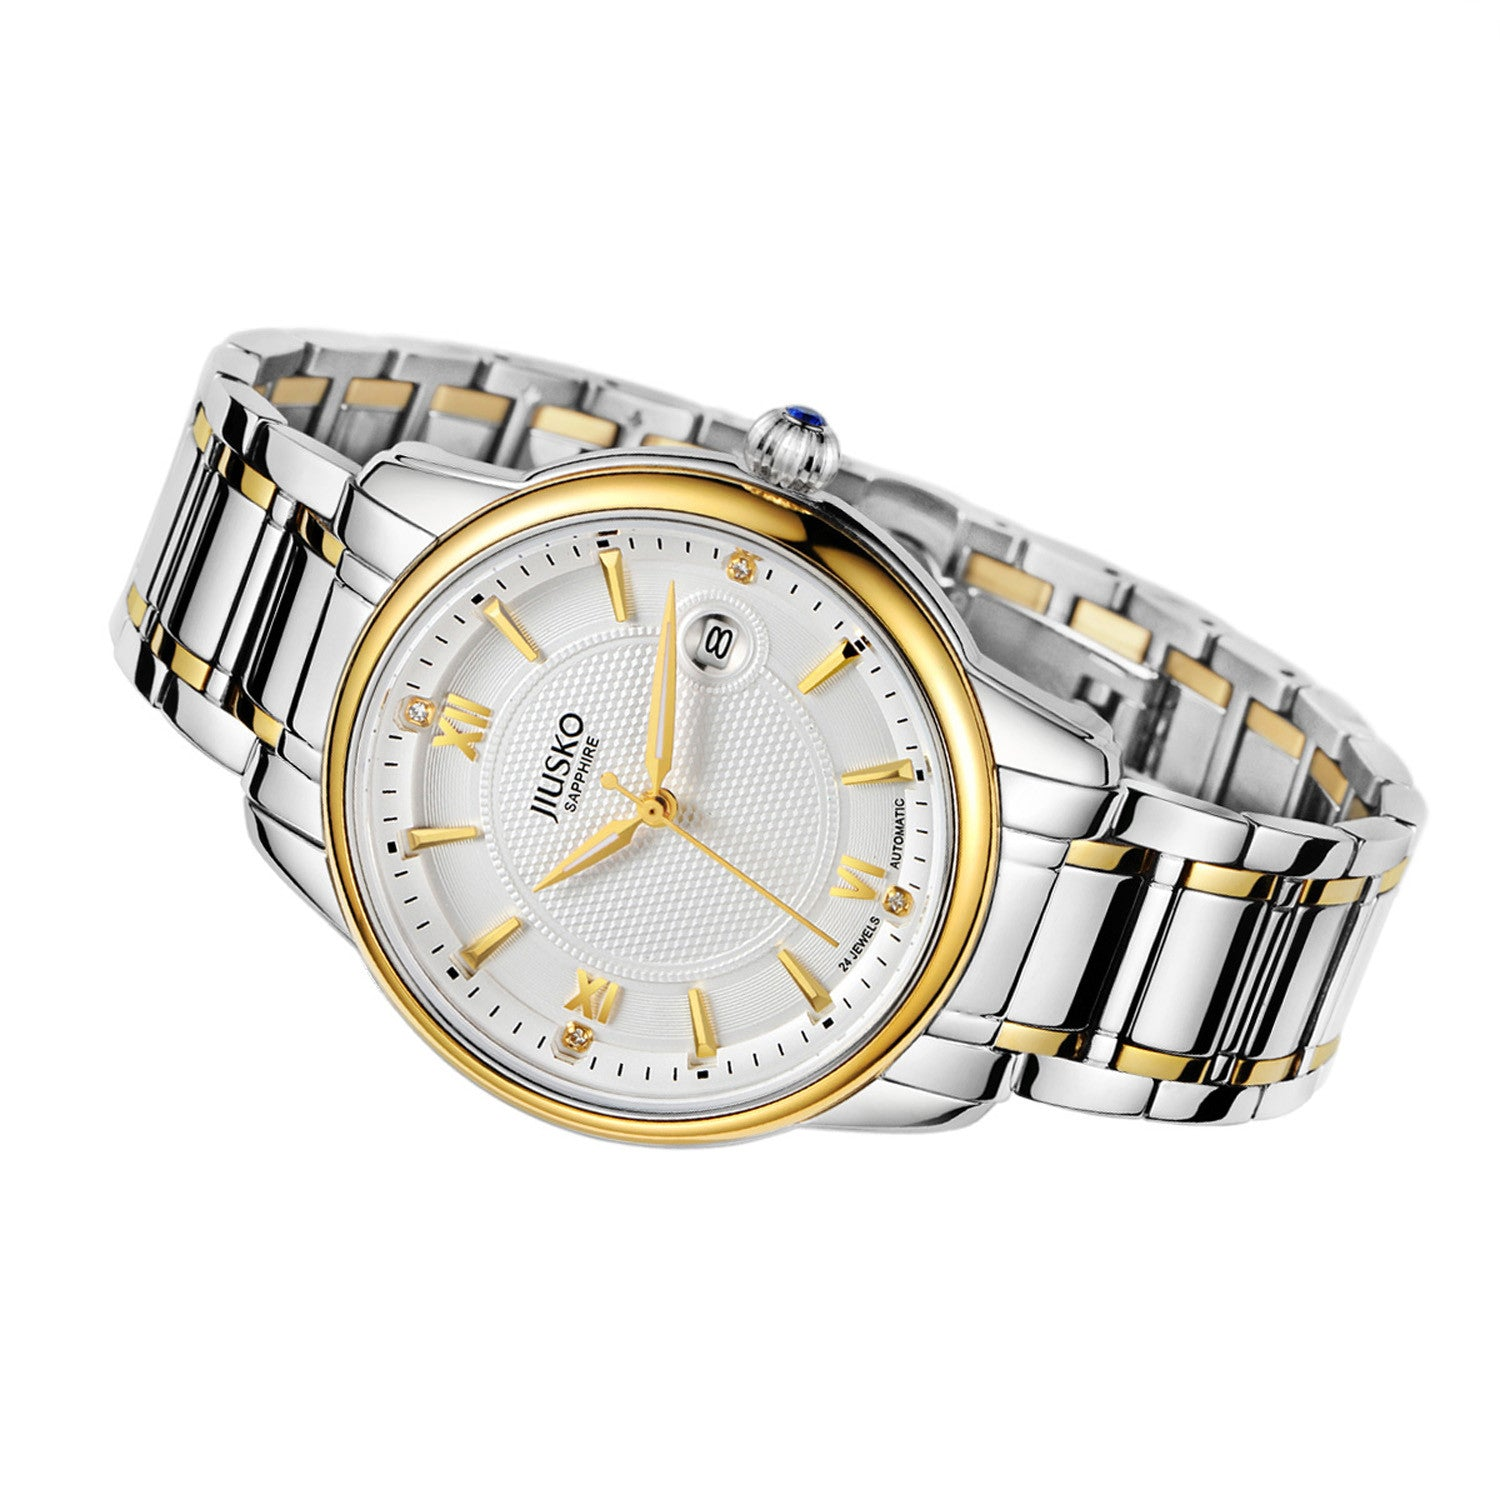 Jiusko Watch,Men's-Dress-Fashion-Automatic-Two Tone Tungsten-100m-203LSBG01